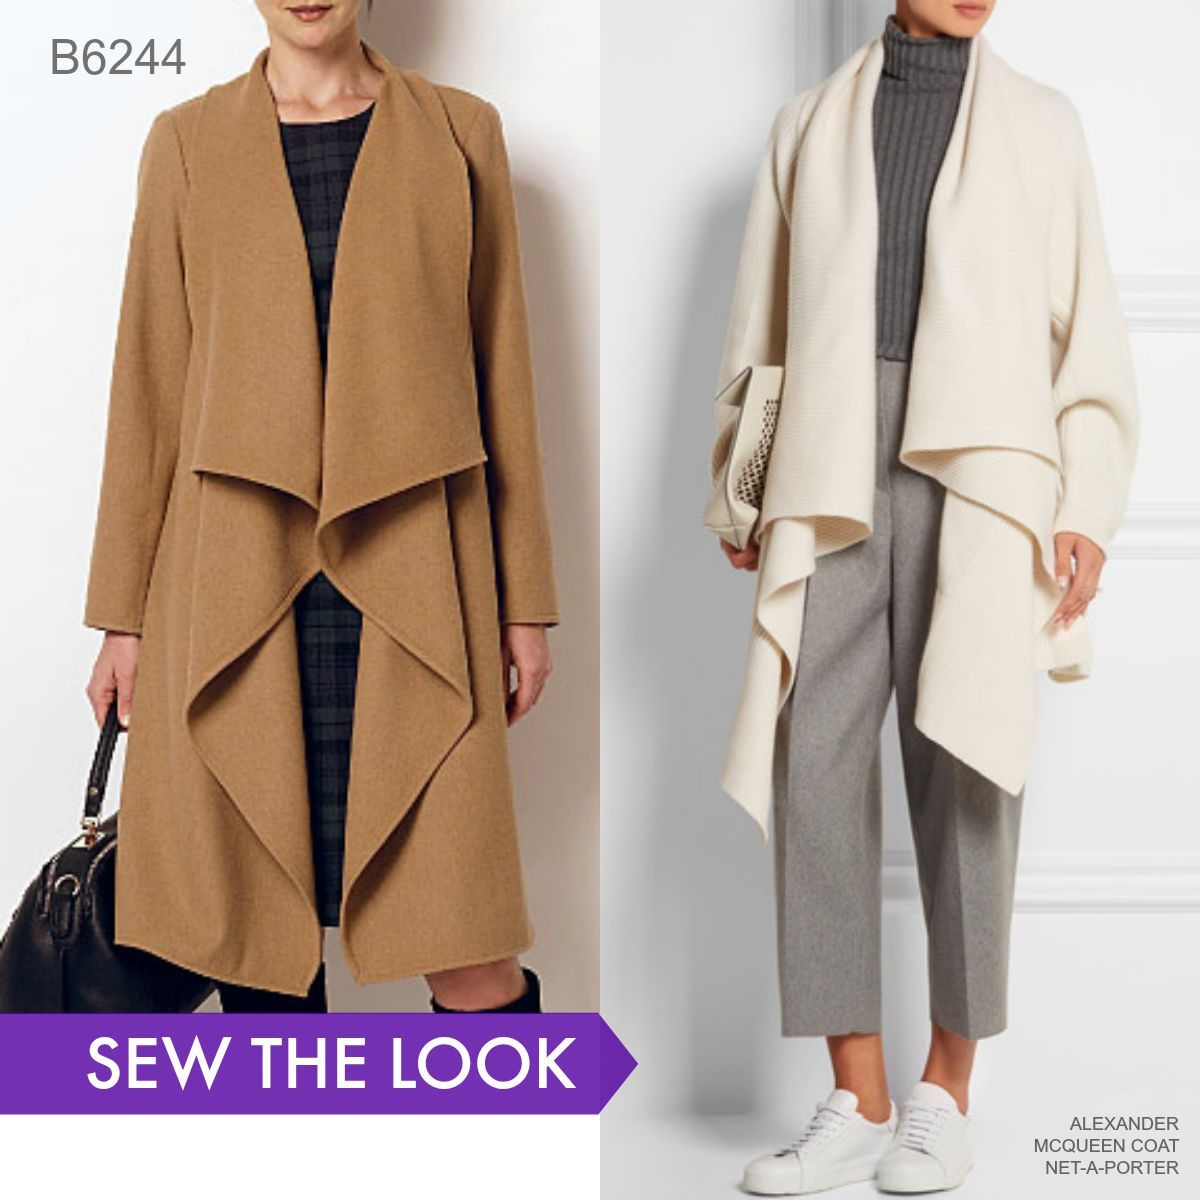 Sew the look: Blanket coats are on-trend for fall and beyond. Look ...